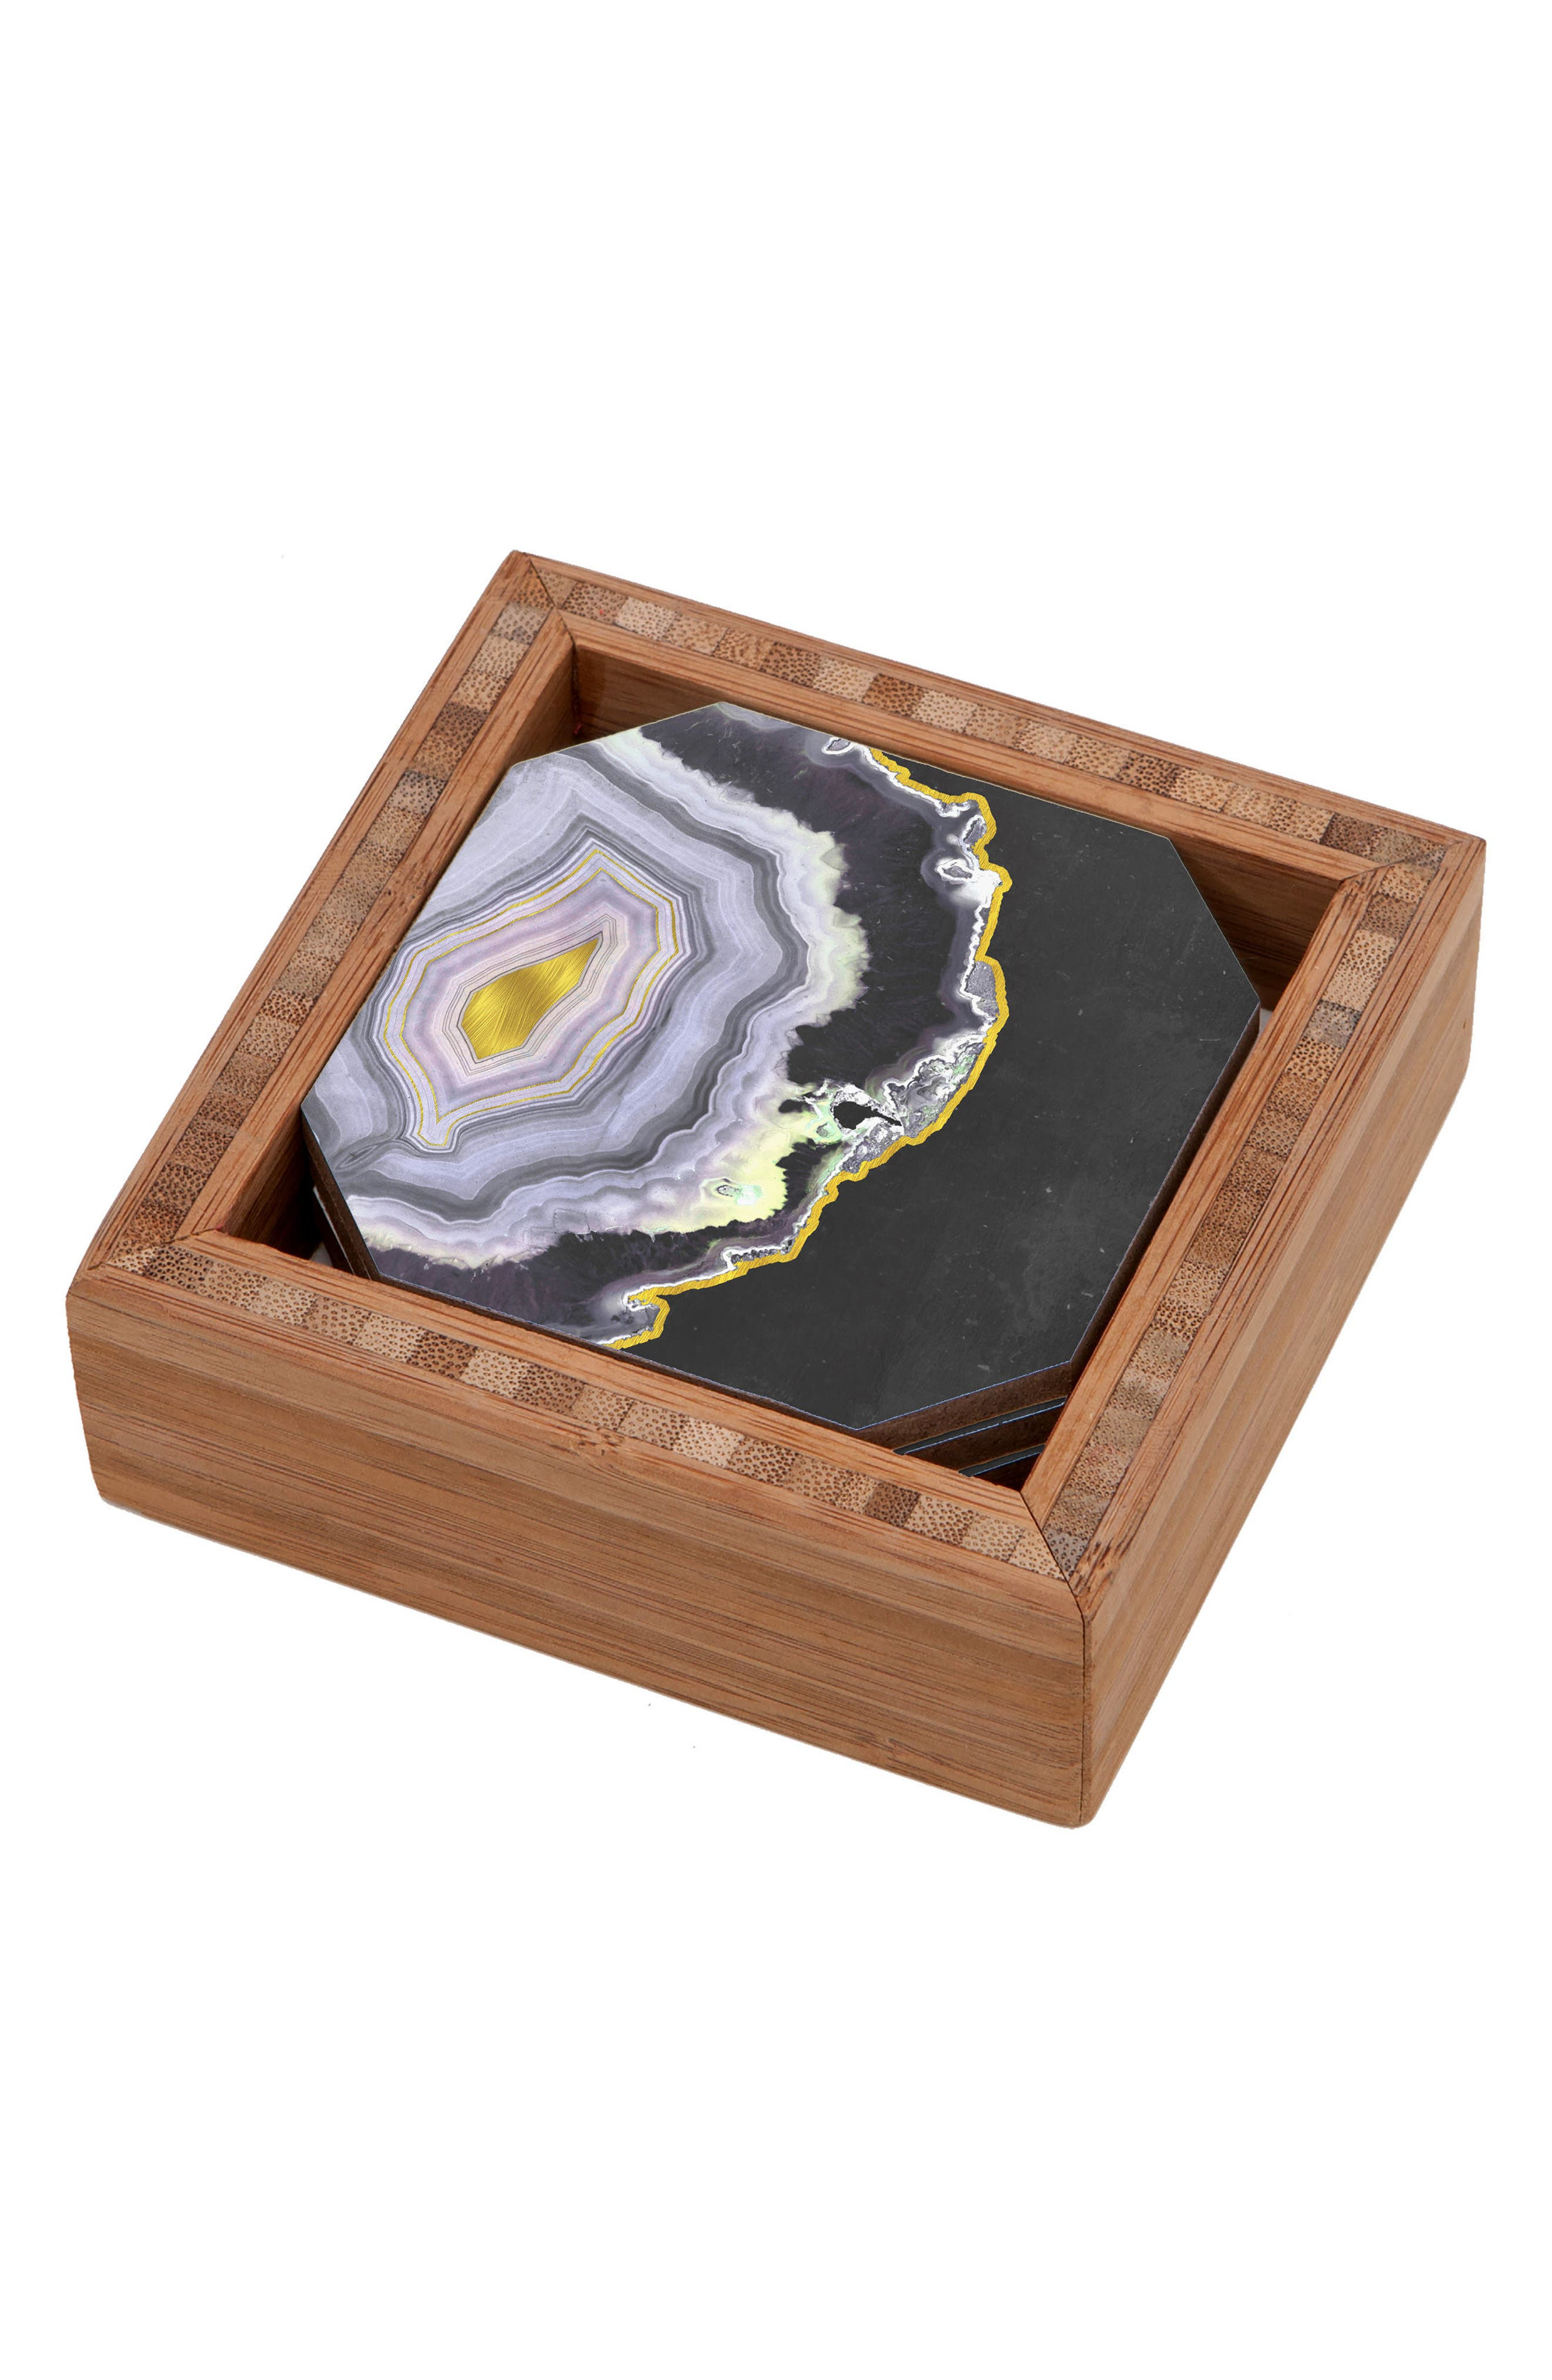 DENY DESIGNS Black Agate Set of 4 Coasters